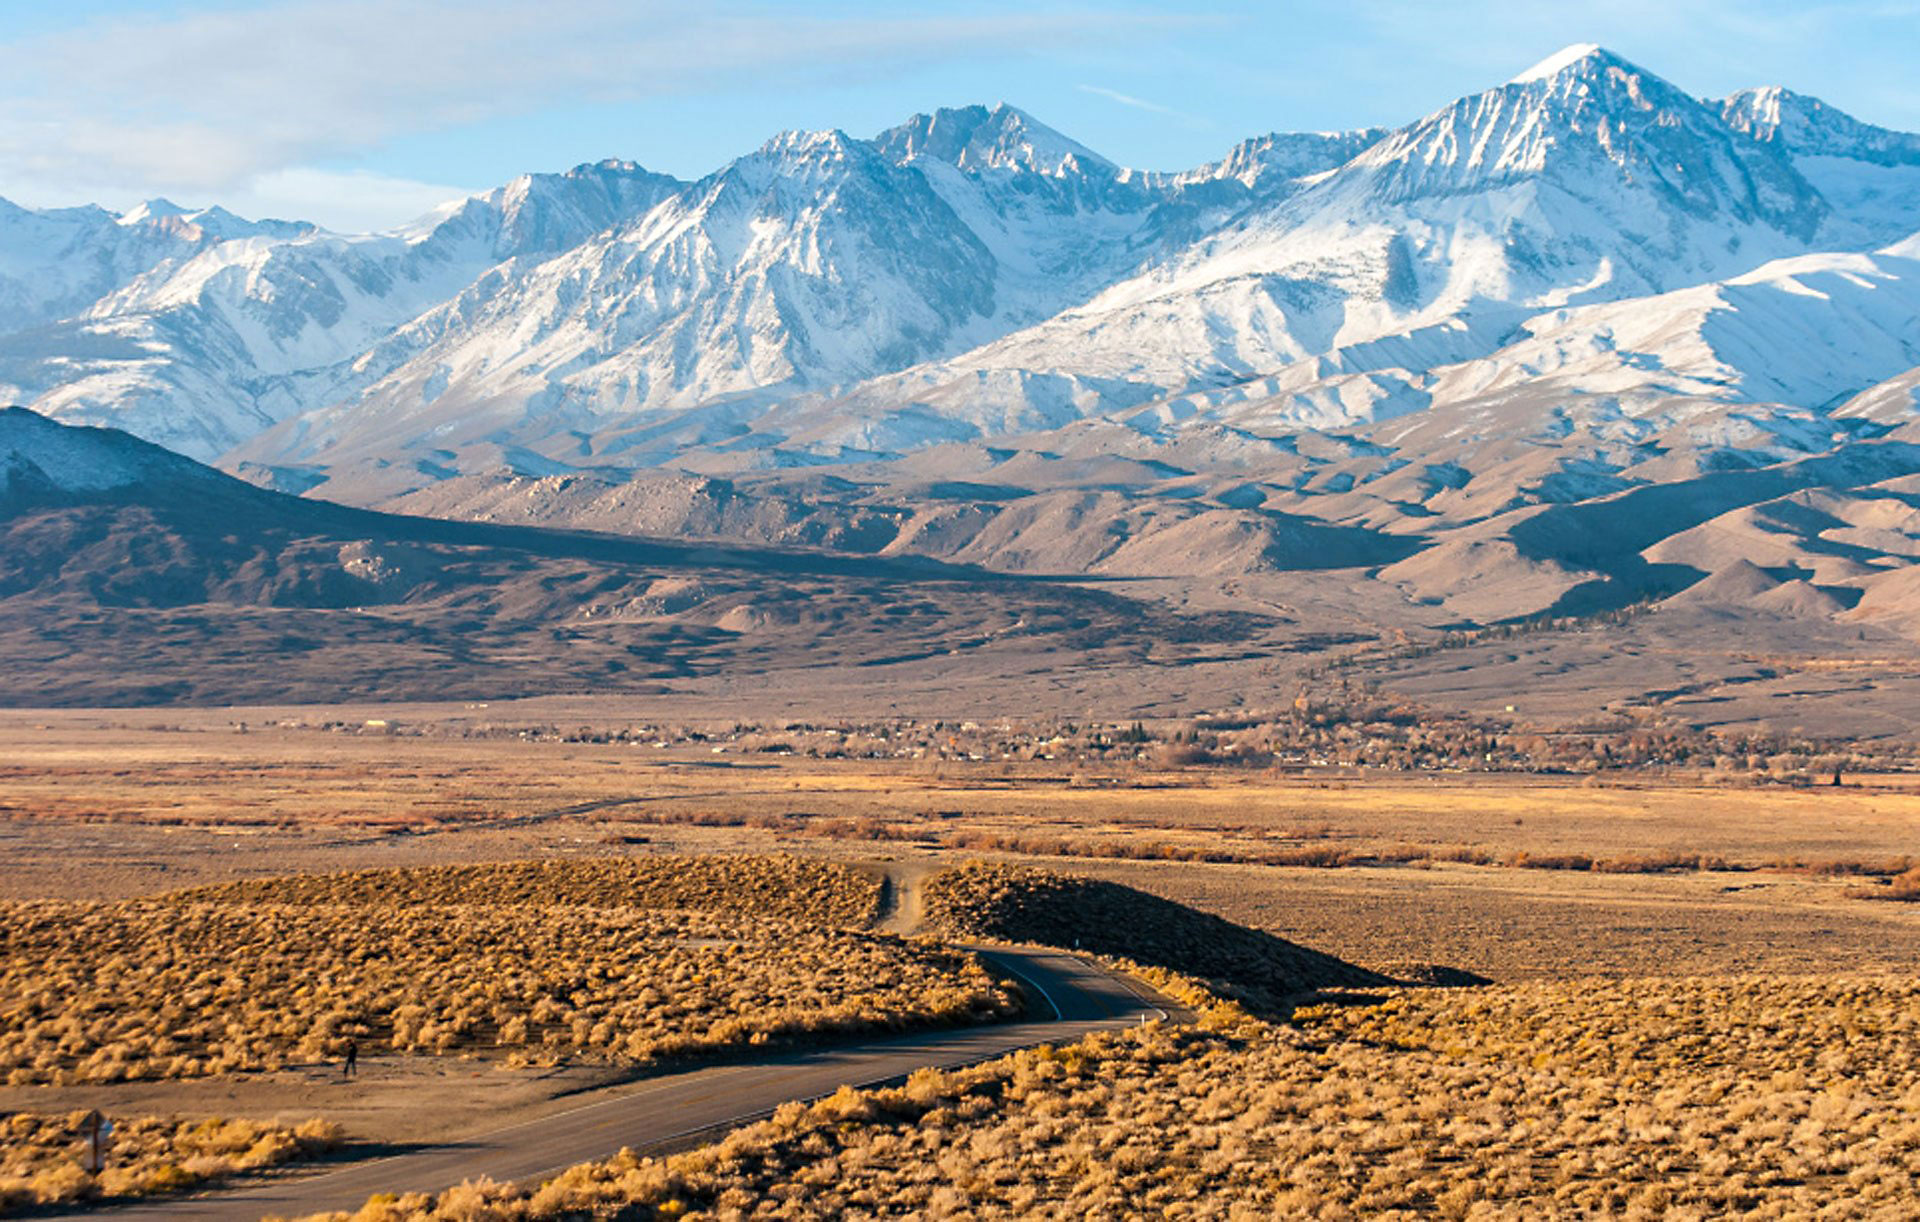 The town of Big Pine, in the Owens Valley south of Bishop. The largest earthquake ever recorded in the Sierra fault system was a magnitude-7.4 in 1872 in the Owens Valley.